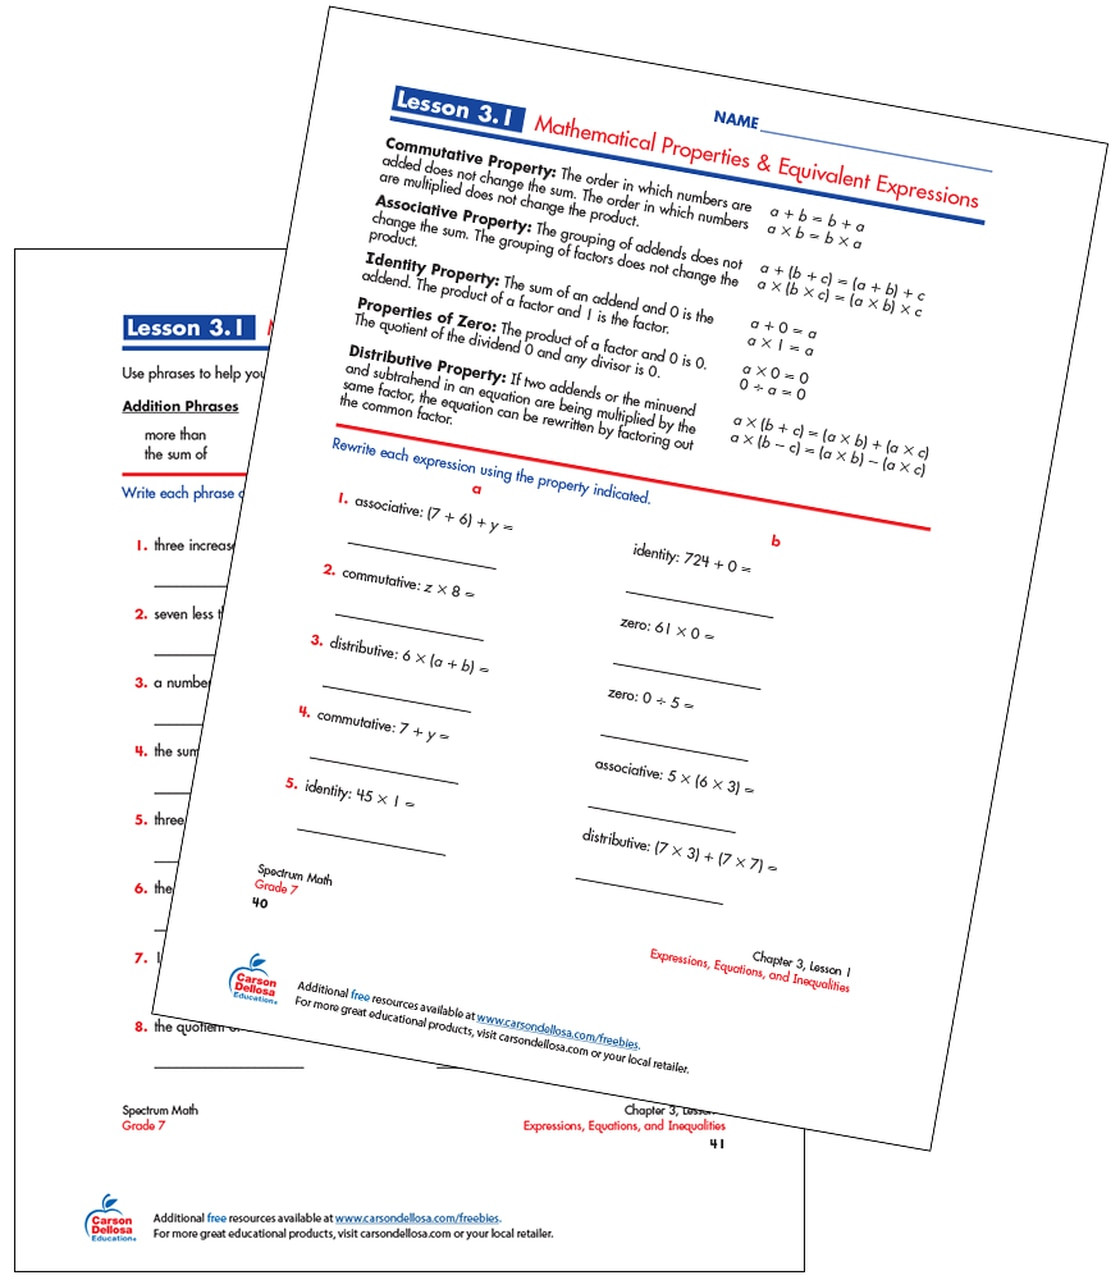 Writing Equivalent Expressions Worksheet Mathematical Properties & Equivalent Expressions Free